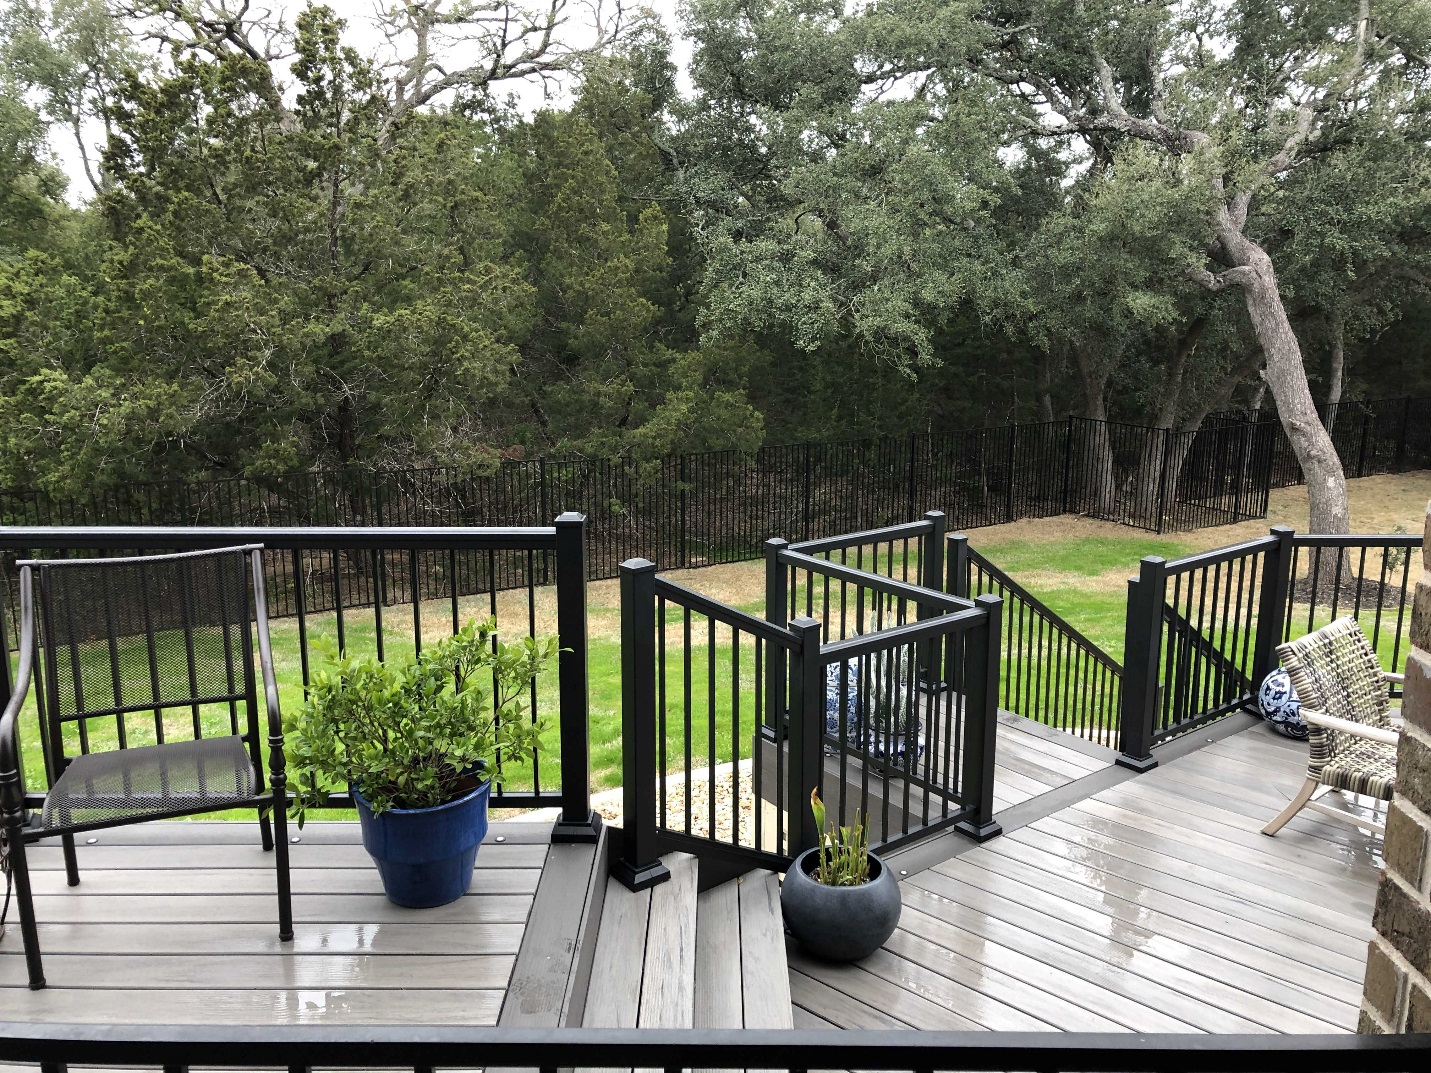 The-TimberTech-railing-adds-more-low-maintenance-benefits-to-this-Georgetown-deck